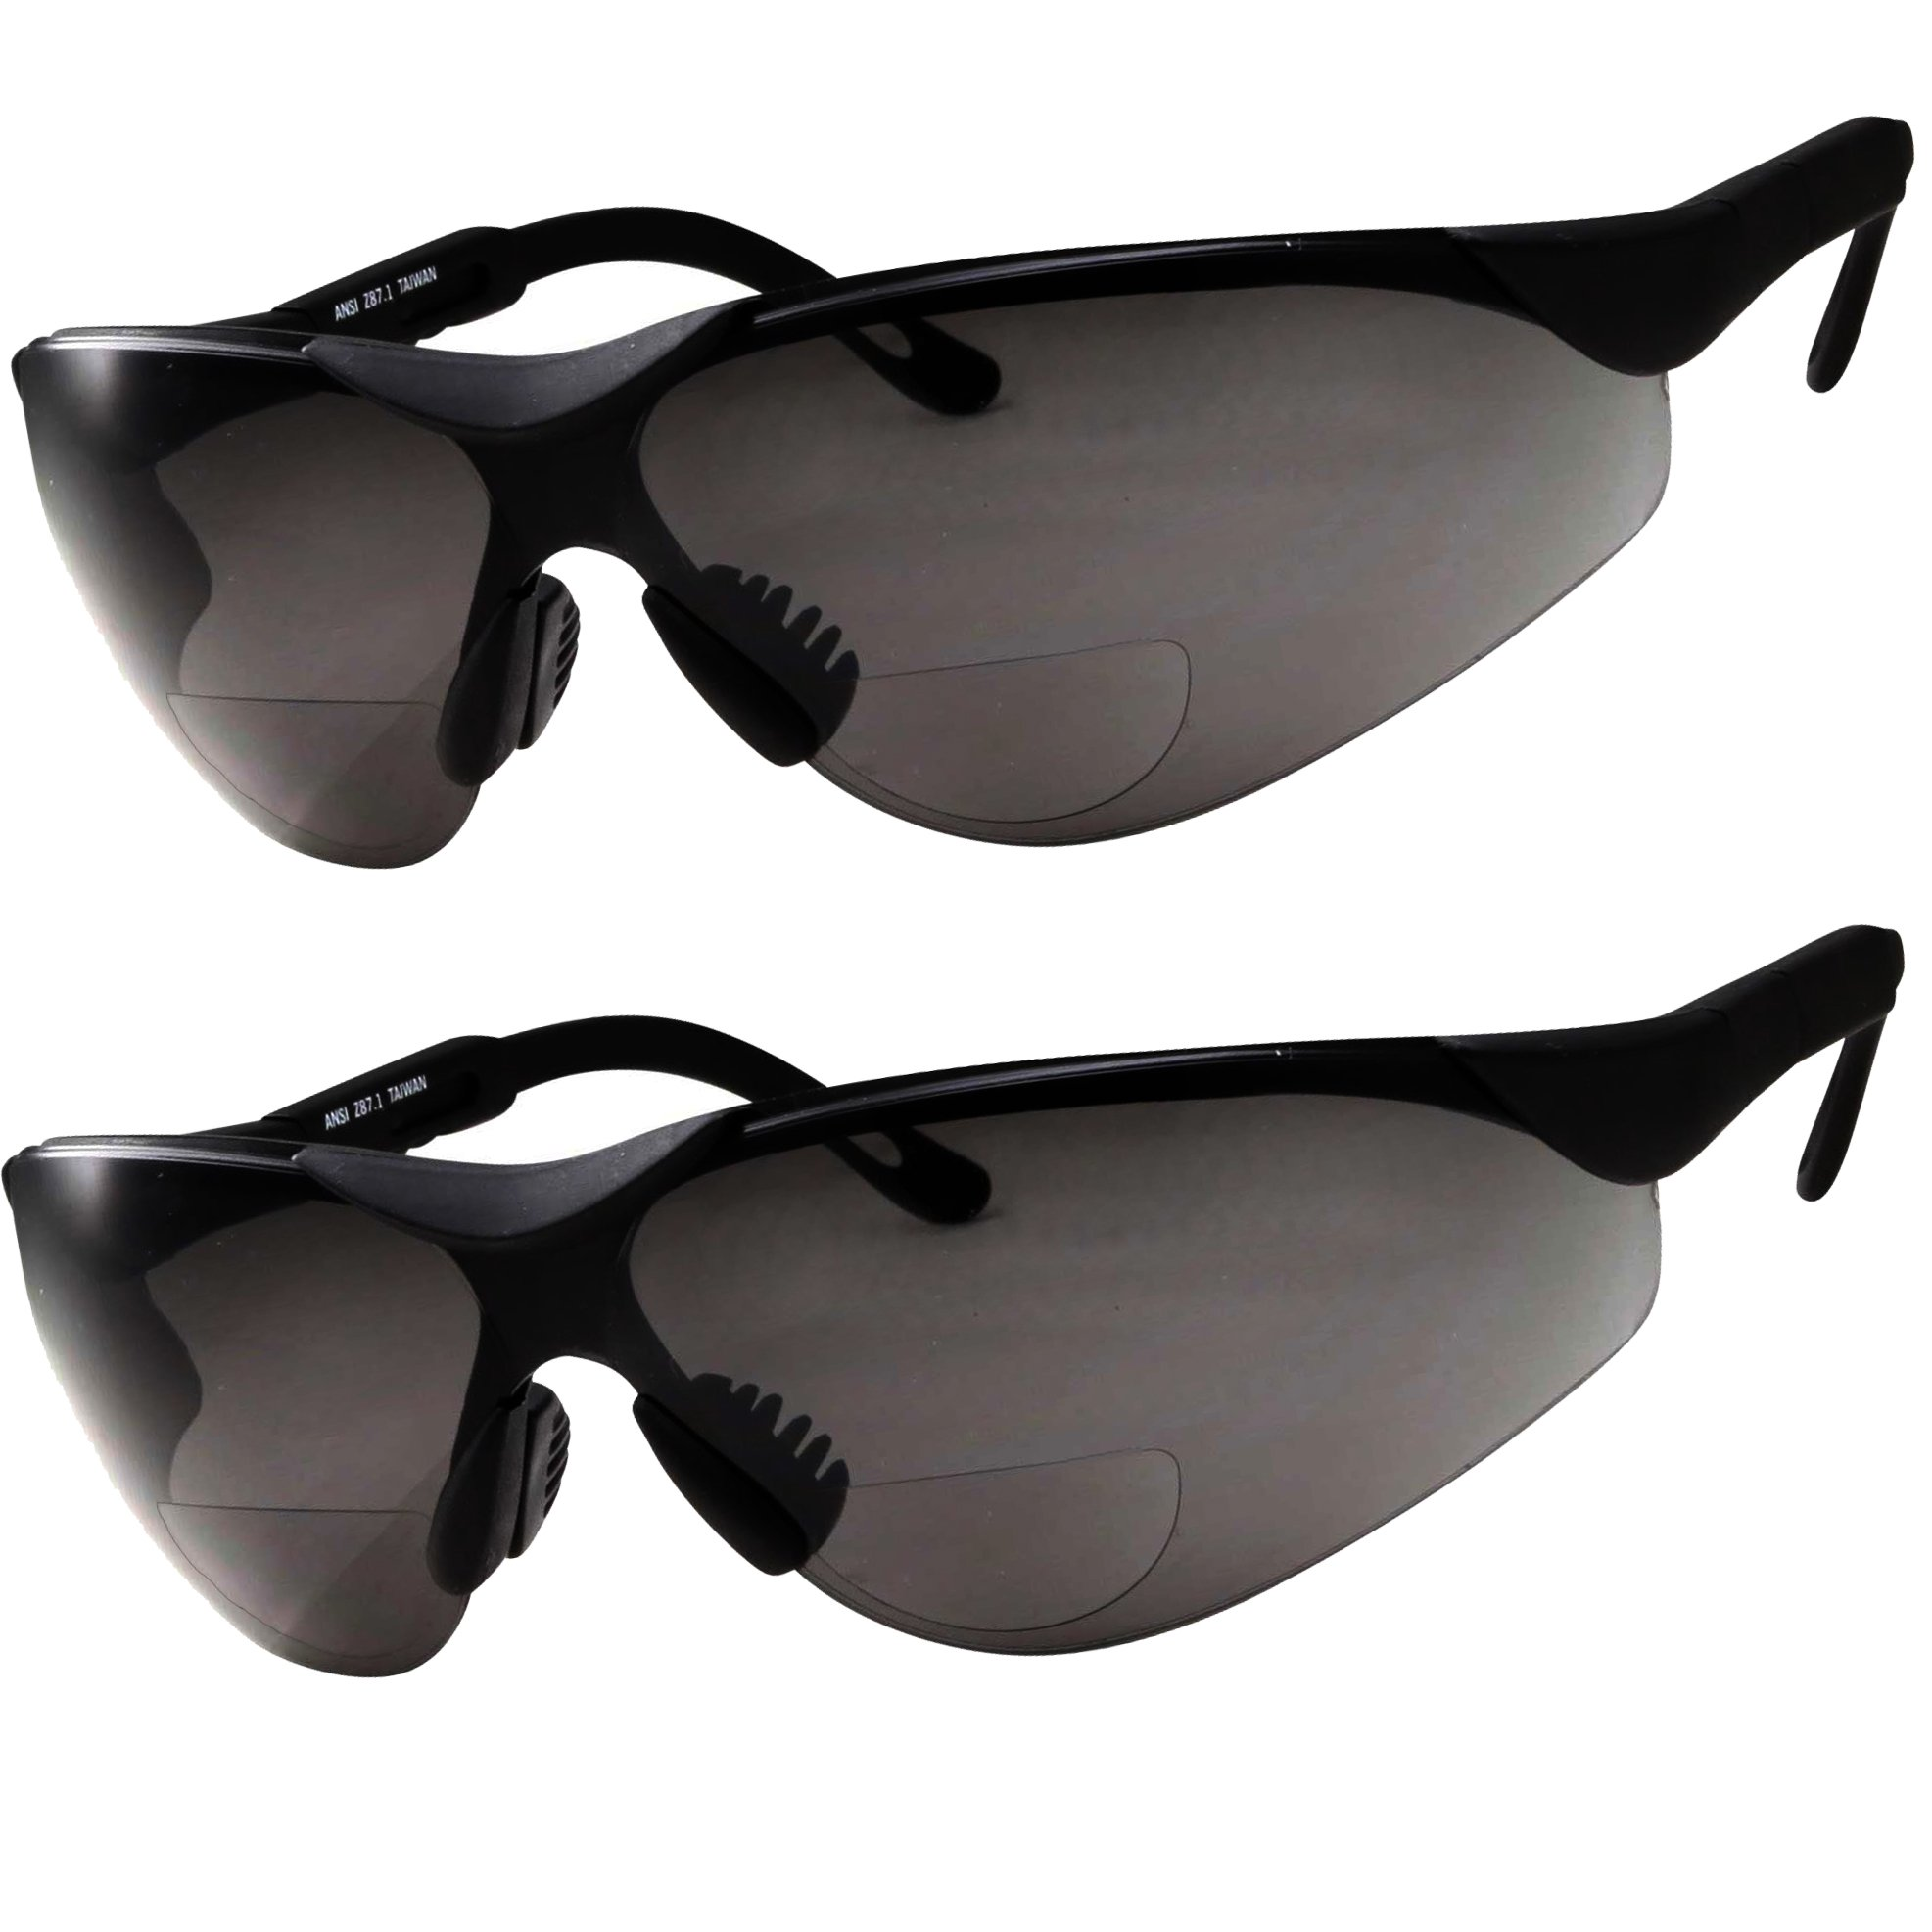 2 Pairs Bifocal Safety Sunglasses Black Lens with Reading Corner - Fully Adjustable Arms Diopter/+1.50